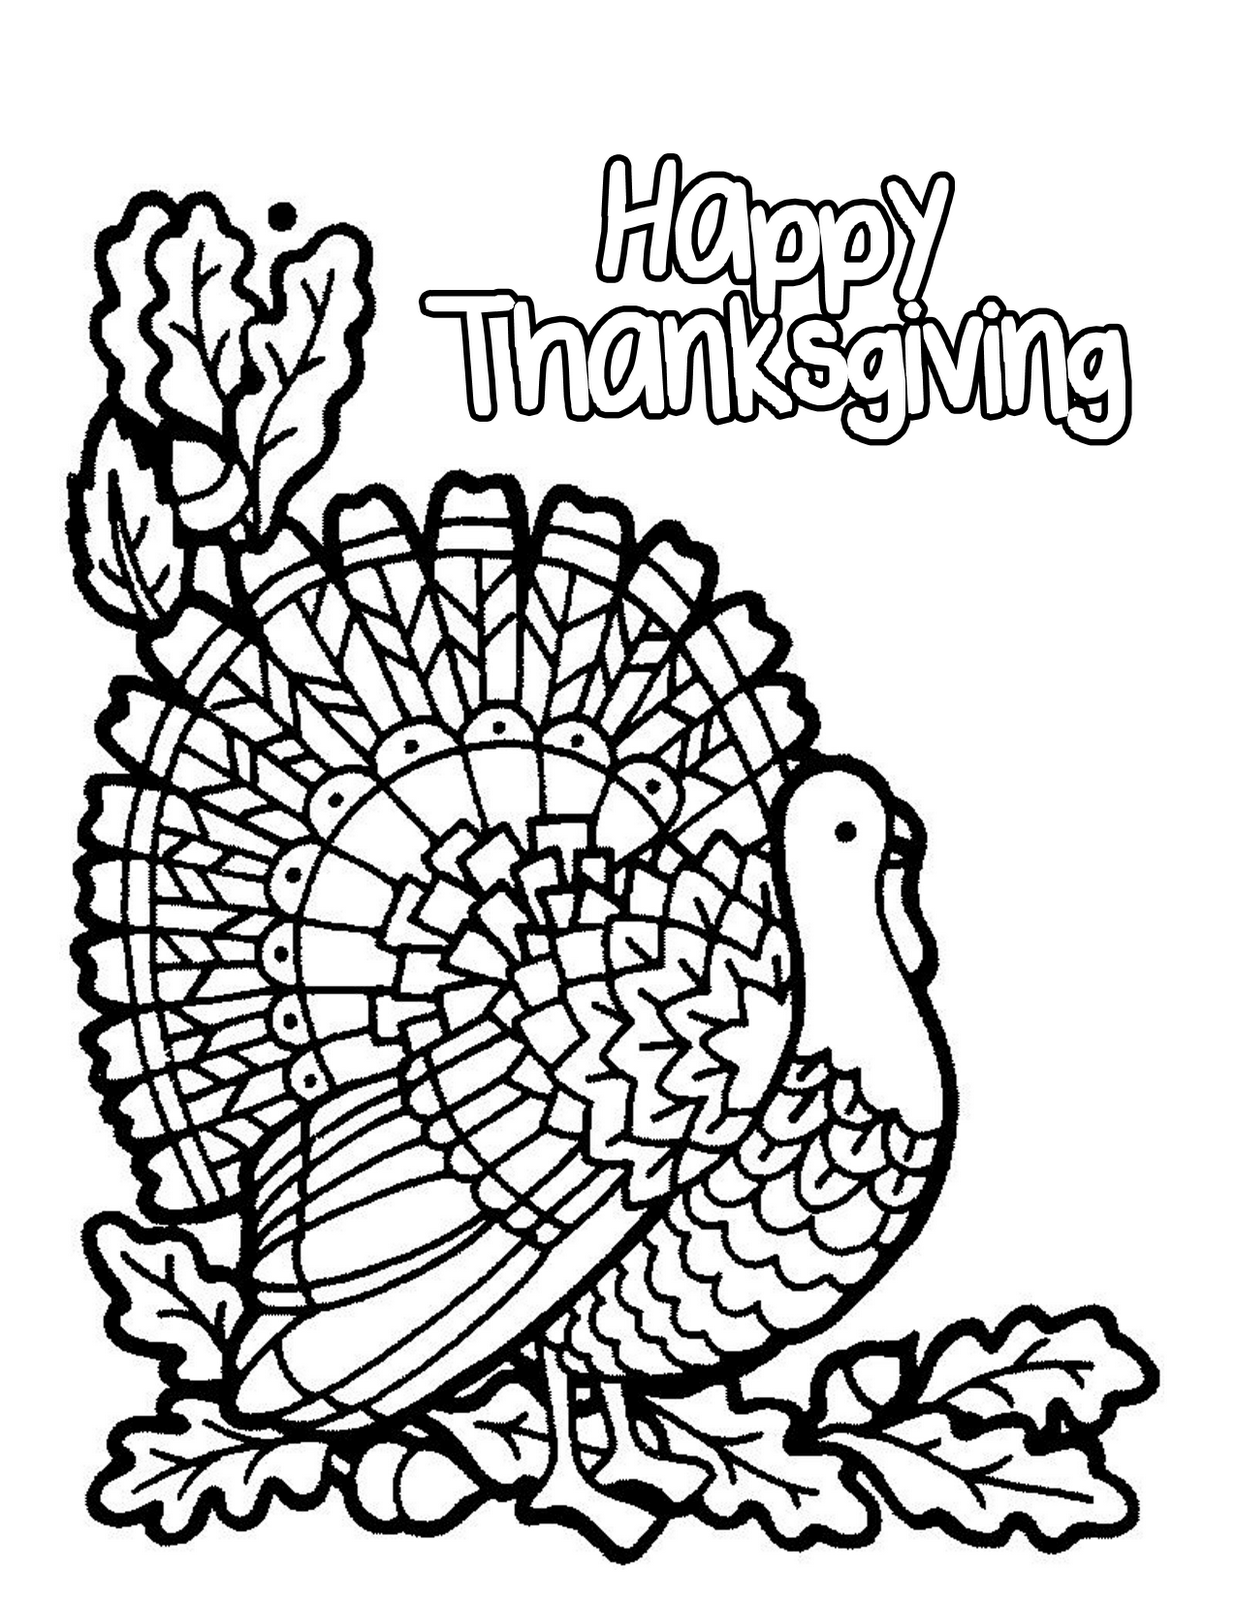 coloring thanksgiving pictures happy thanksgiving coloring pages to download and print coloring pictures thanksgiving